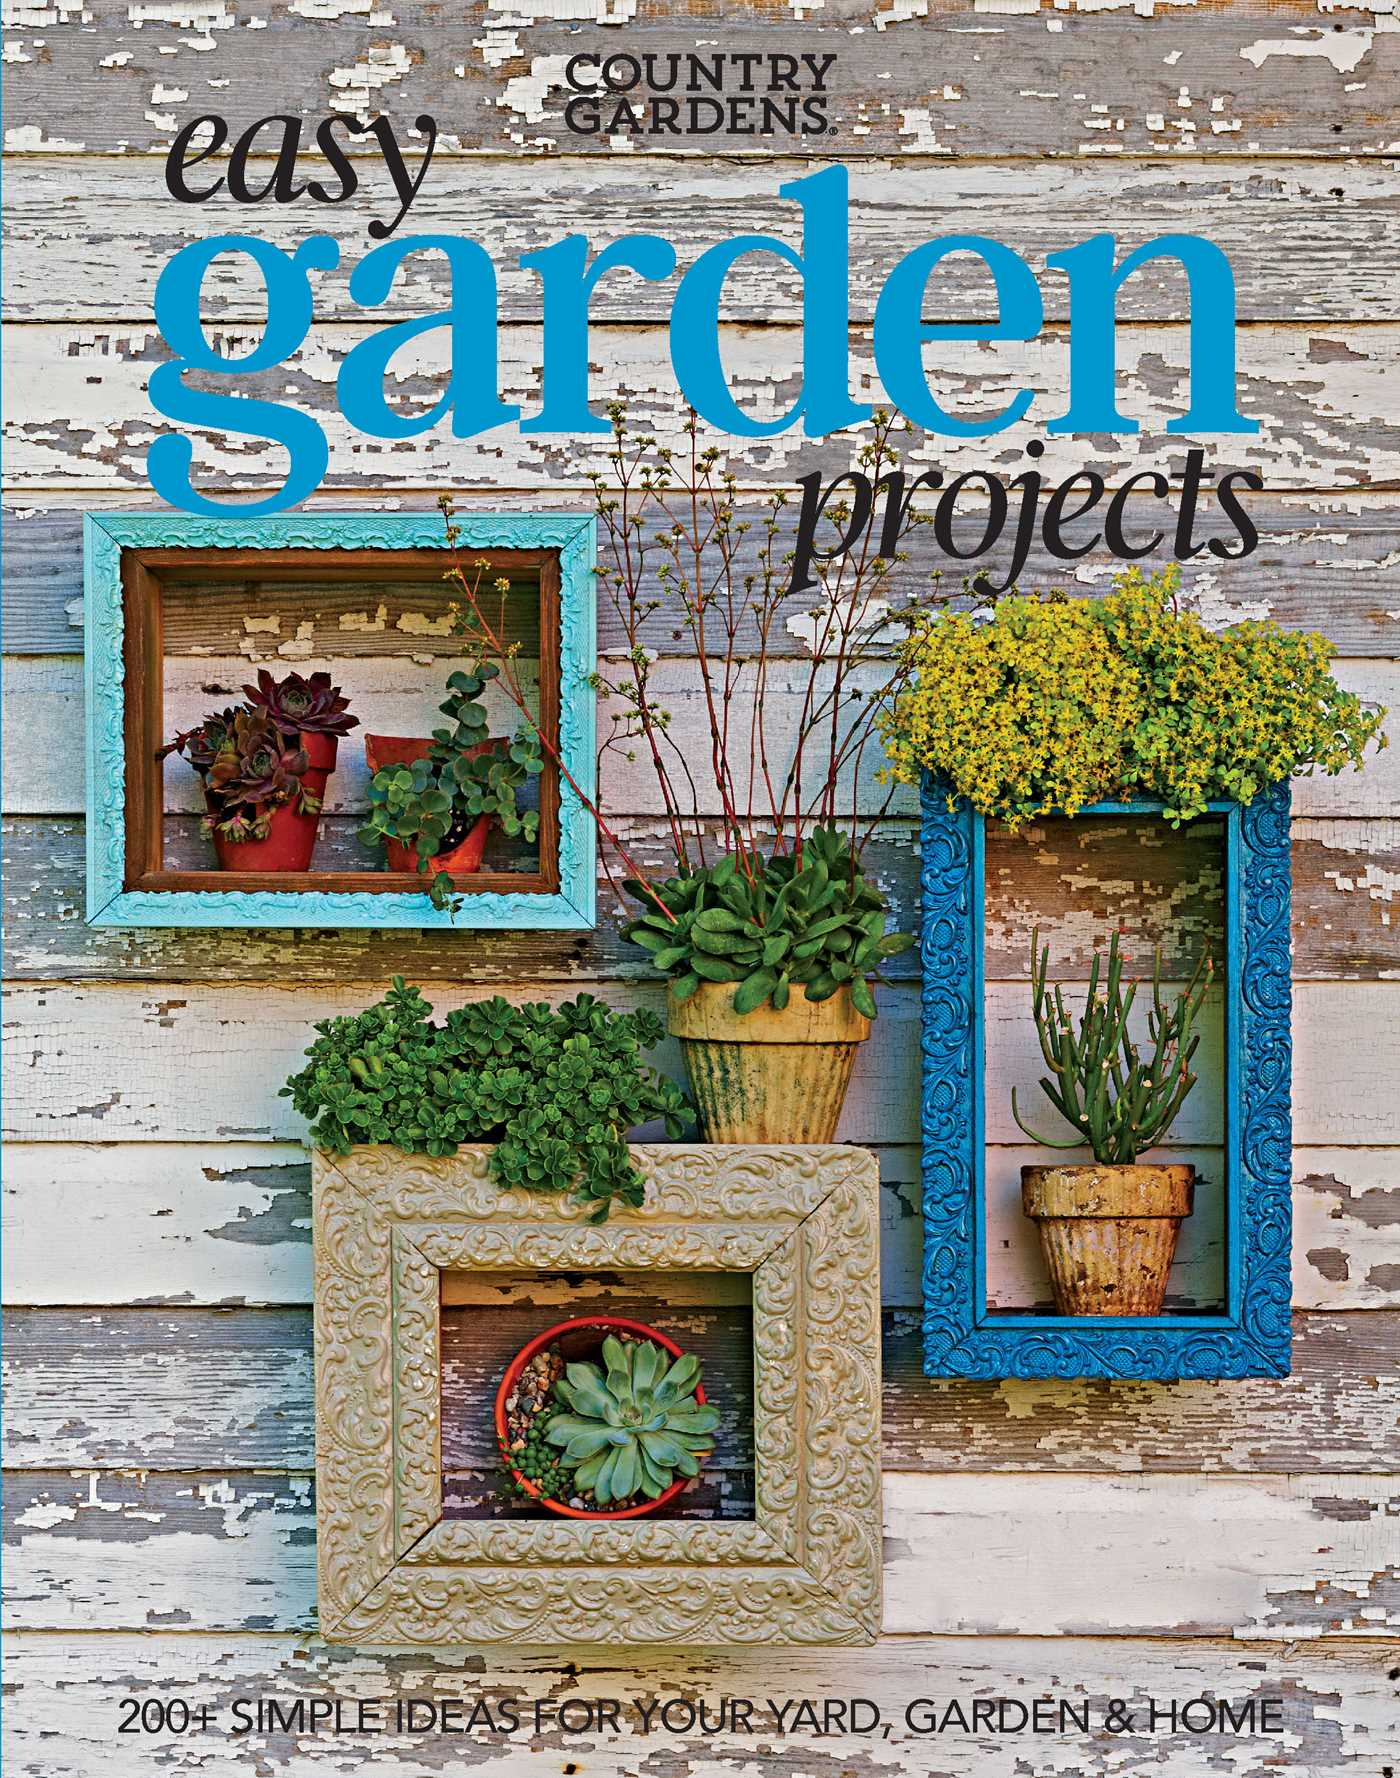 Easy Garden Projects  Book by Country Gardens  Official